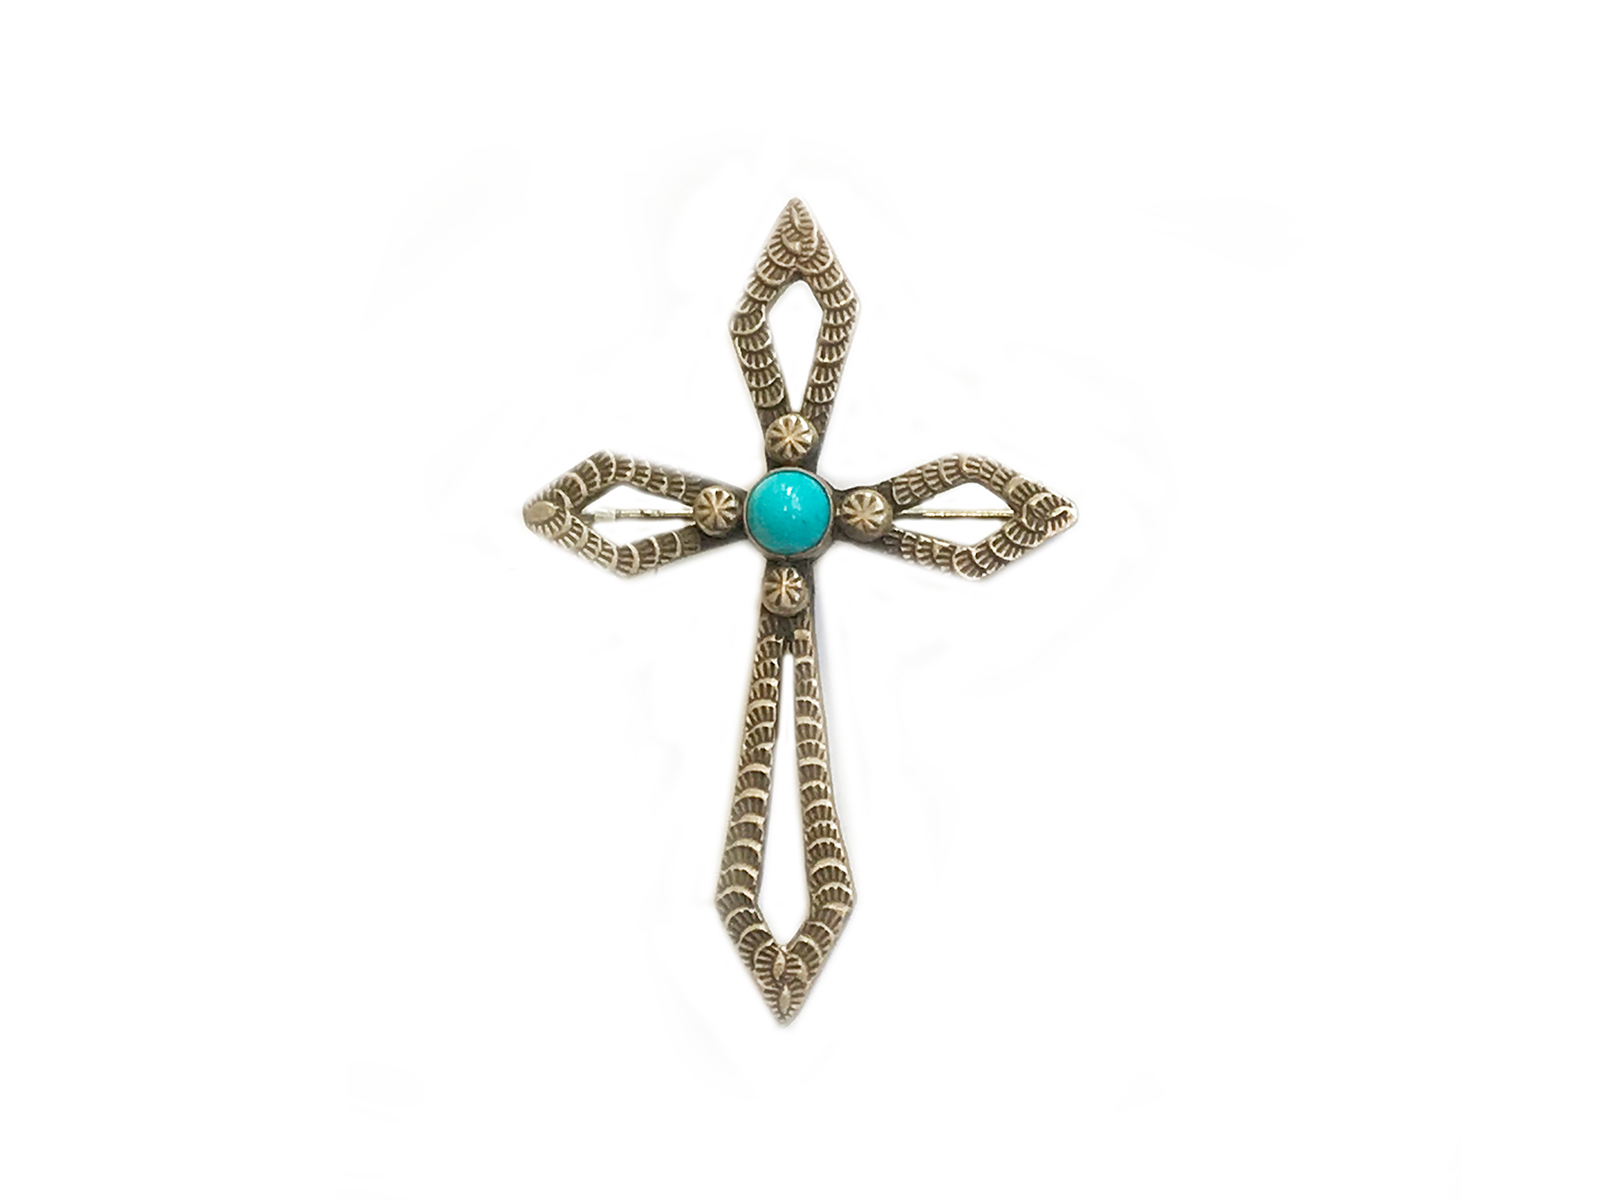 Sleeping Beauty Turquoise Cross Pendant Pin